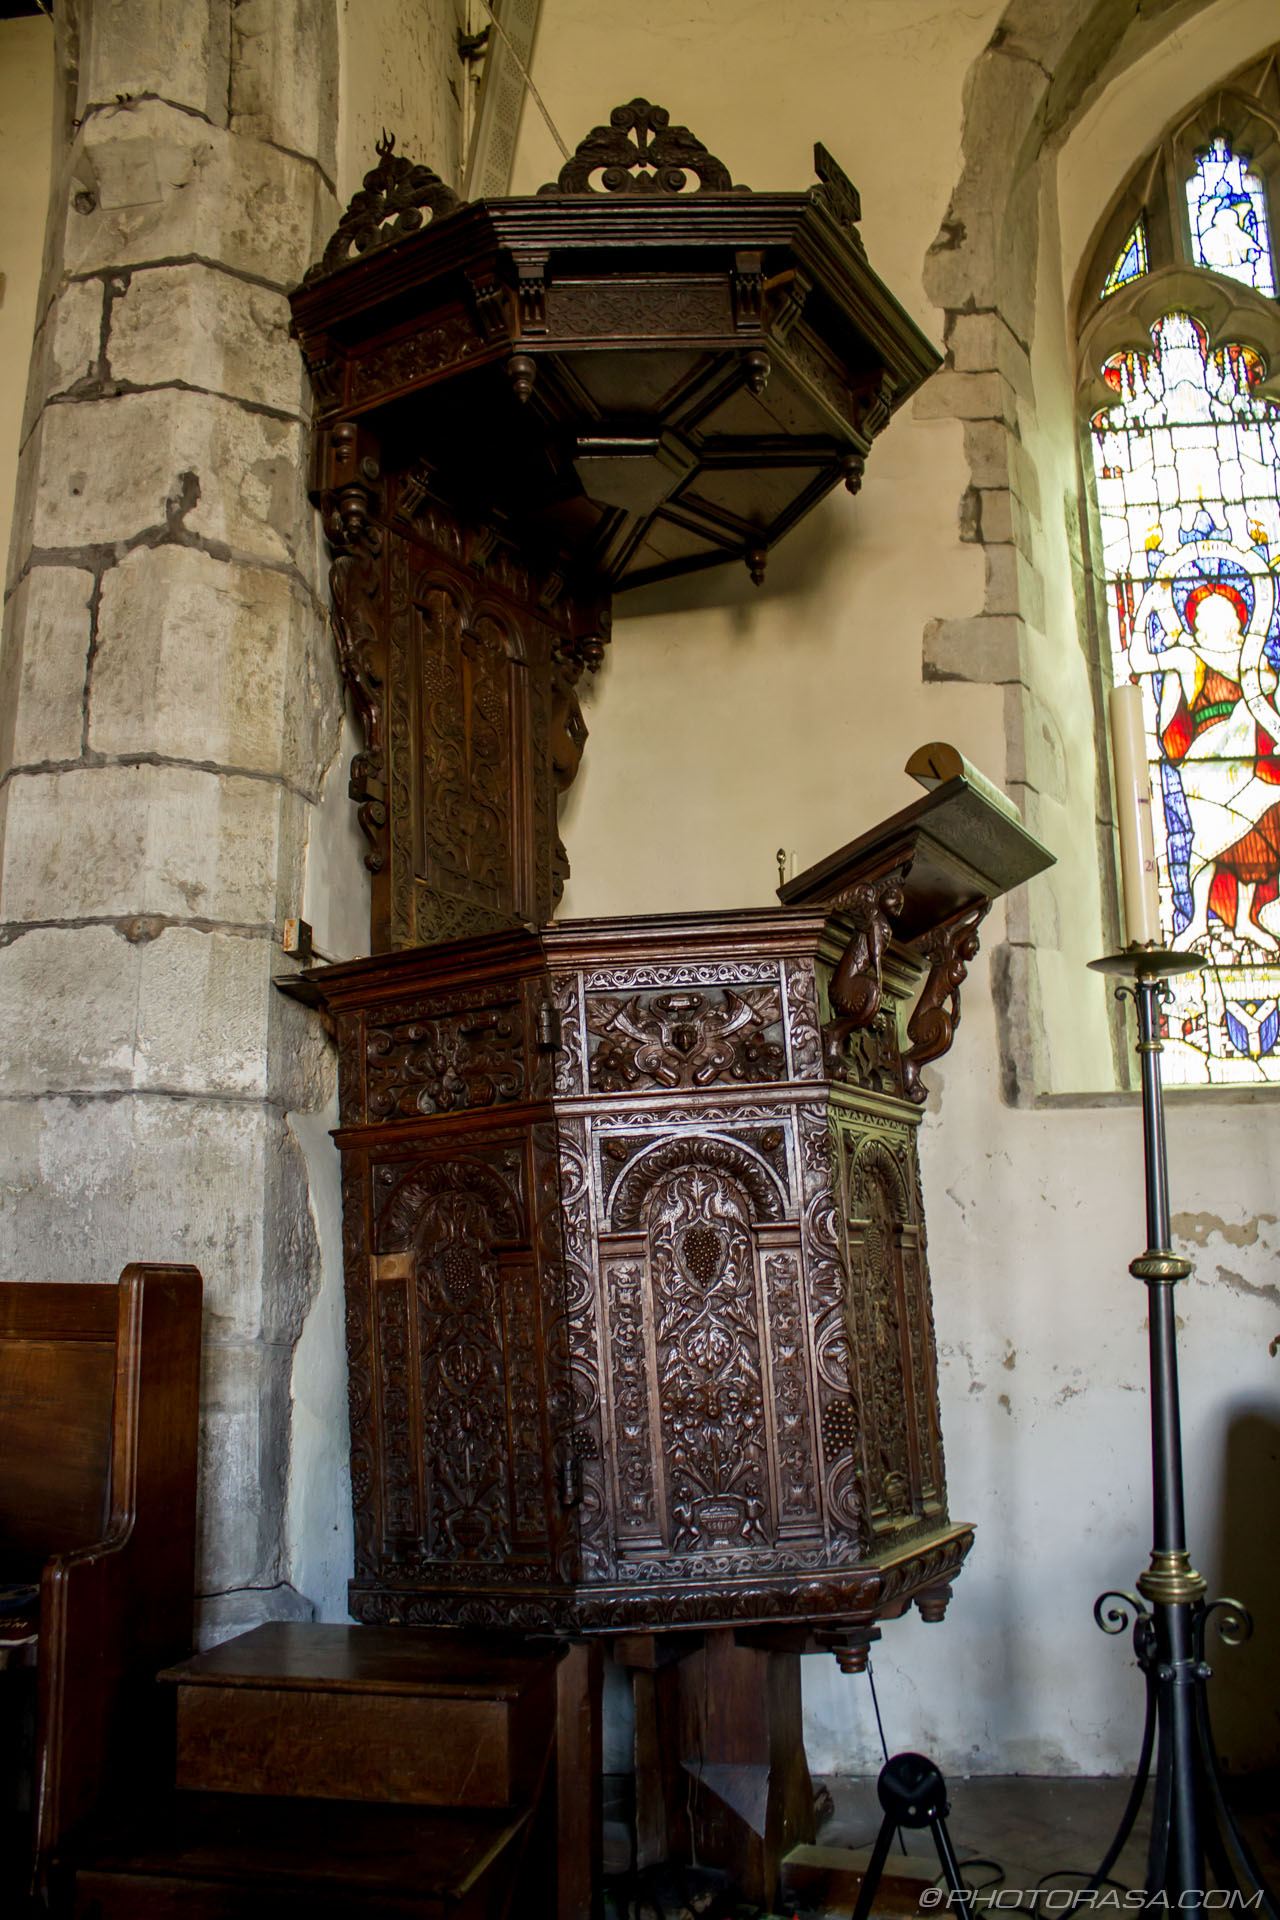 http://photorasa.com/st-marys-church-in-lenham/extravagantly-carved-wooden-church-pulpit/